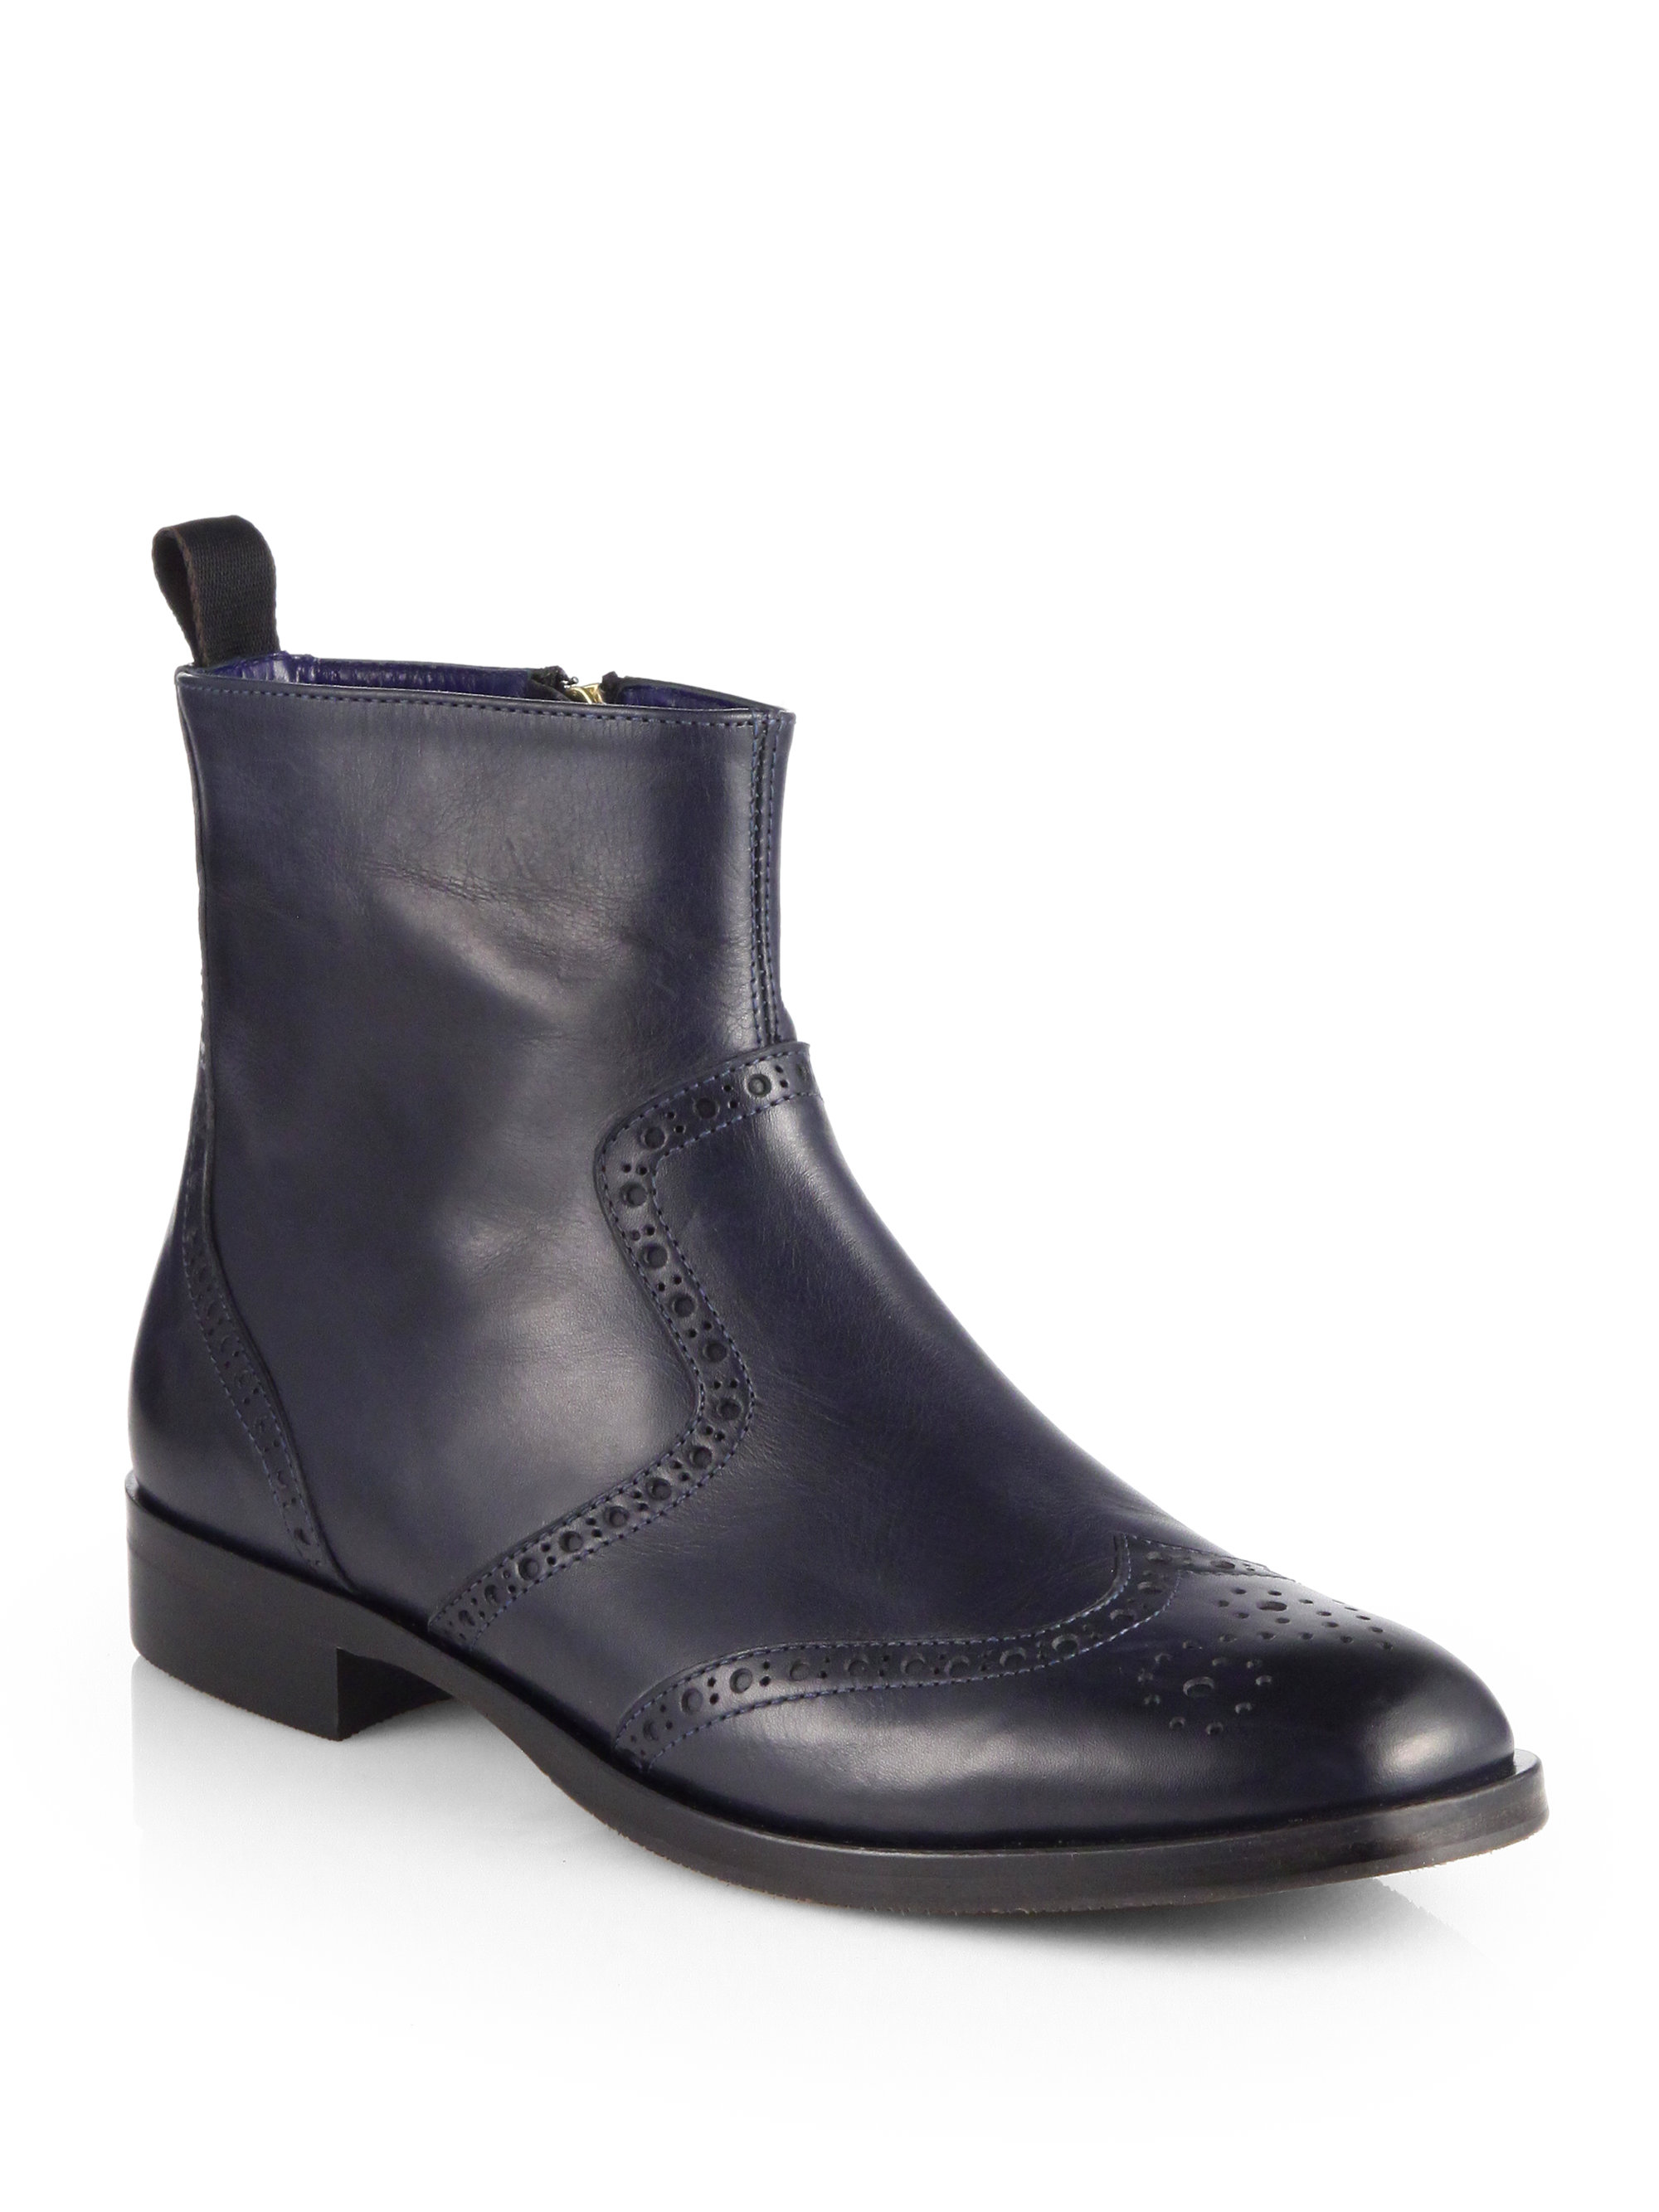 Pollini Short Leather Flat Boots In Black Lyst